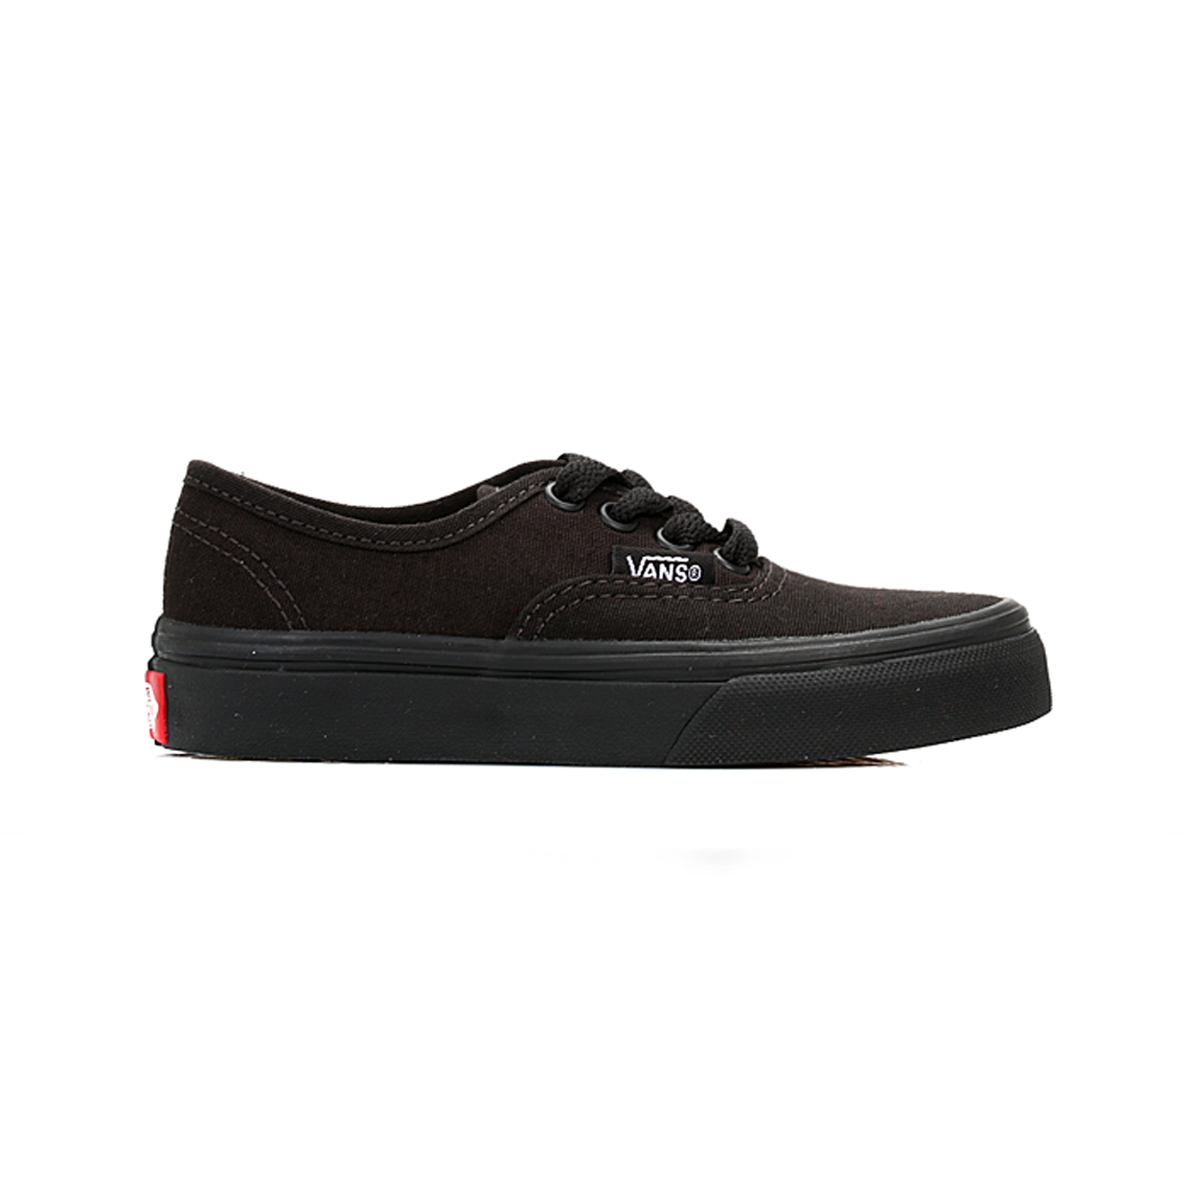 vans kids shoes. vans-kids-girls-boys-trainers-black-authentic-canvas- vans kids shoes -